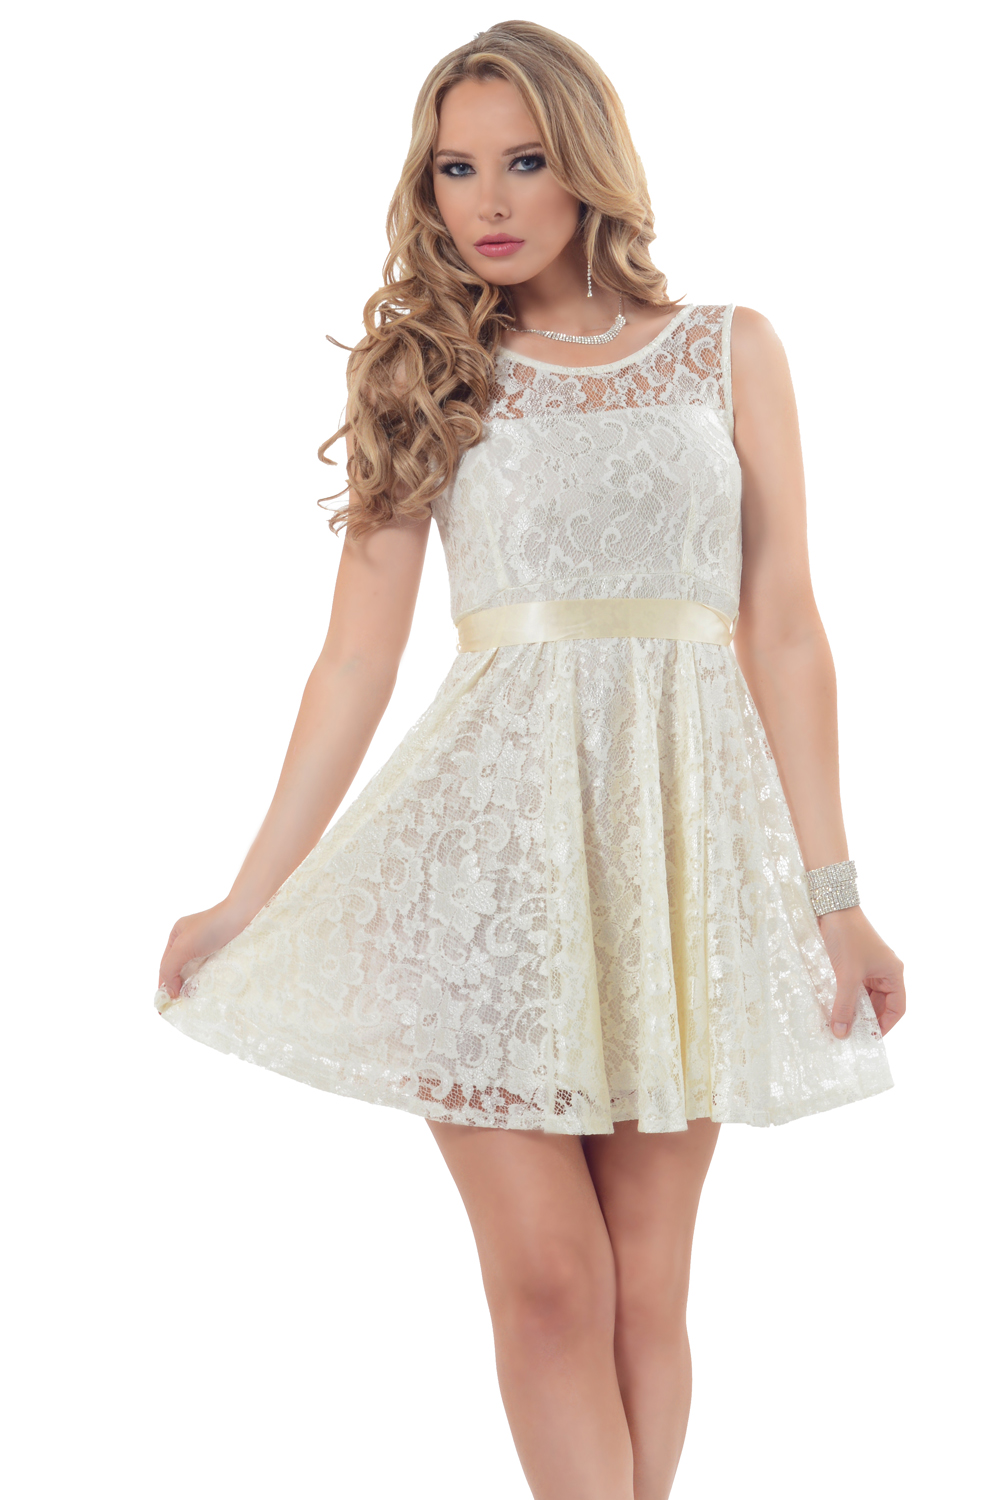 Hot From Hollywood Stunning Rose Lace Overlay Flirty Fit-N-Flare Mini Tulle Tutu Ribbon Bow Dress at Sears.com